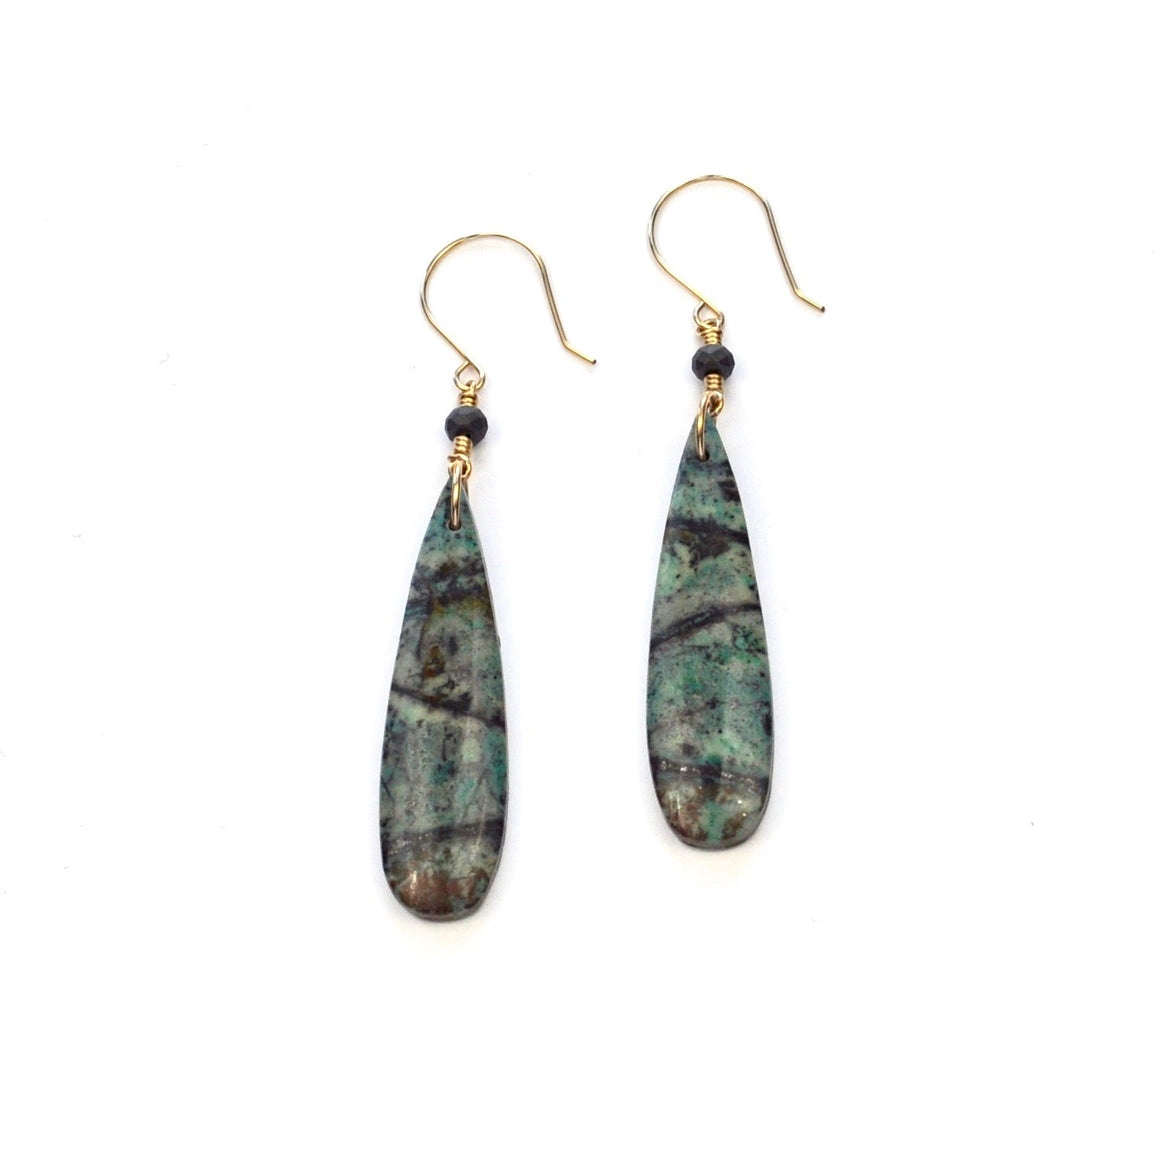 Ruby Fuchsite Earrings